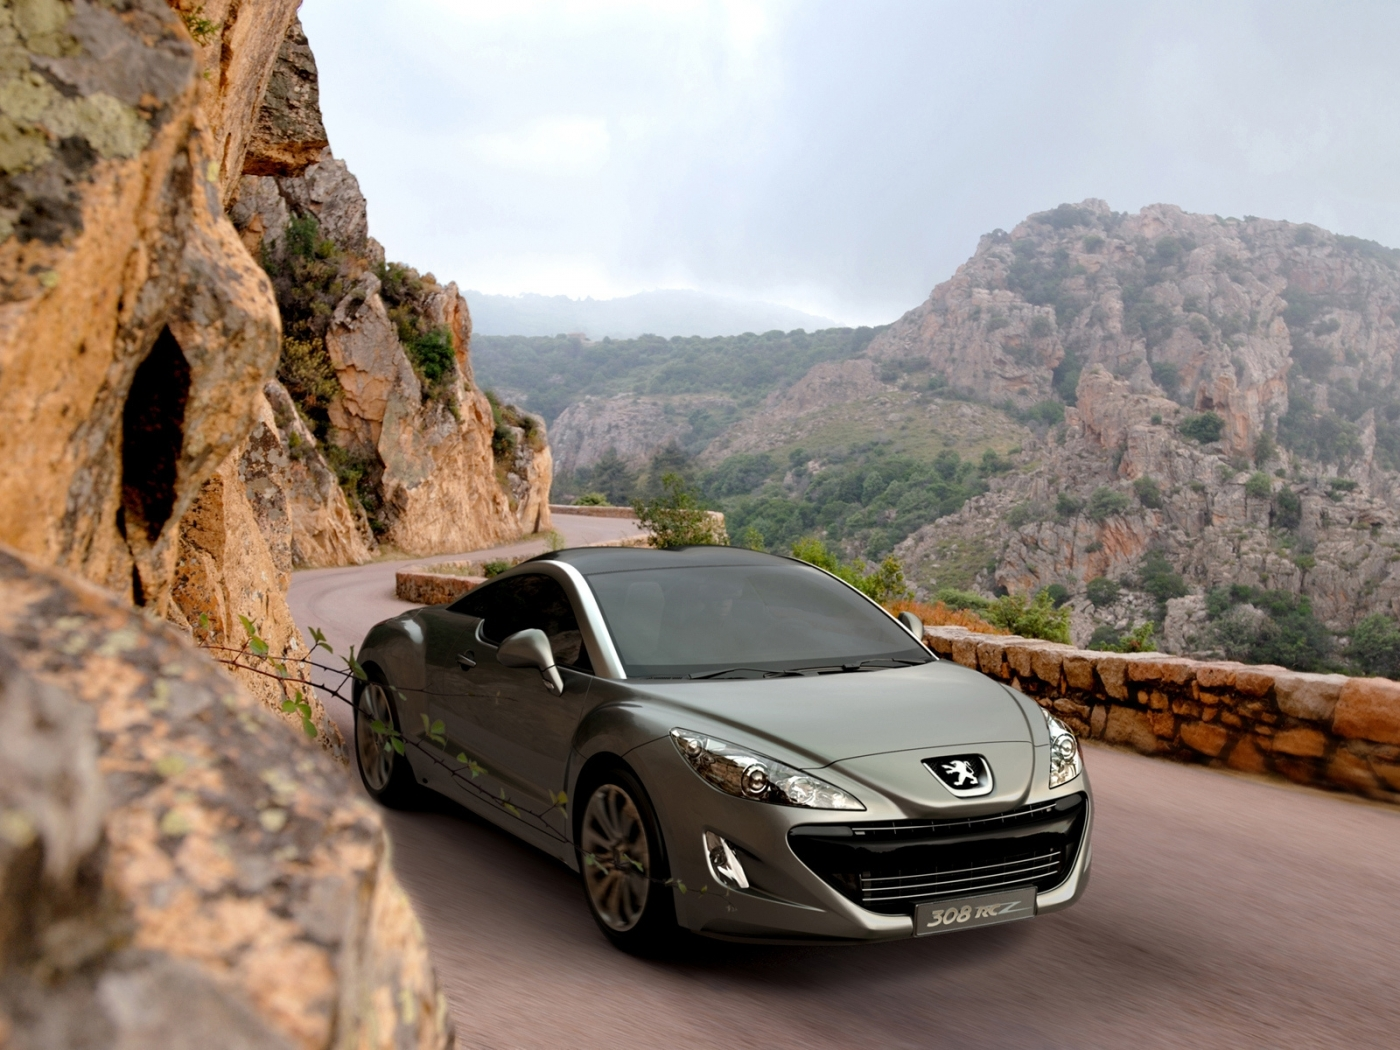 42235 Screensavers and Wallpapers Peugeot for phone. Download Transport, Landscape, Auto, Peugeot pictures for free